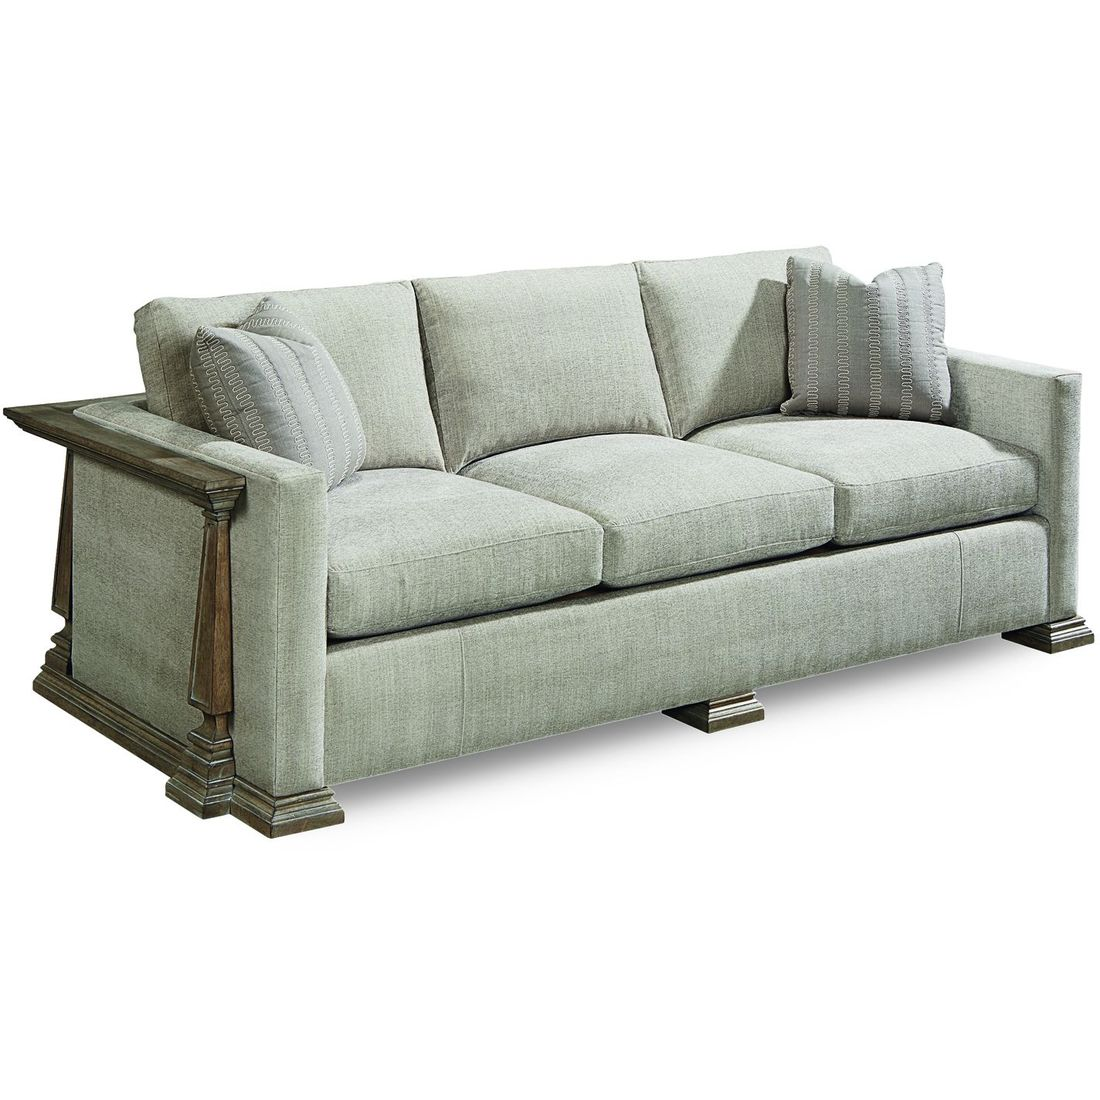 A R T Furniture Arch Salvage Harrison Living Room Sofa Set